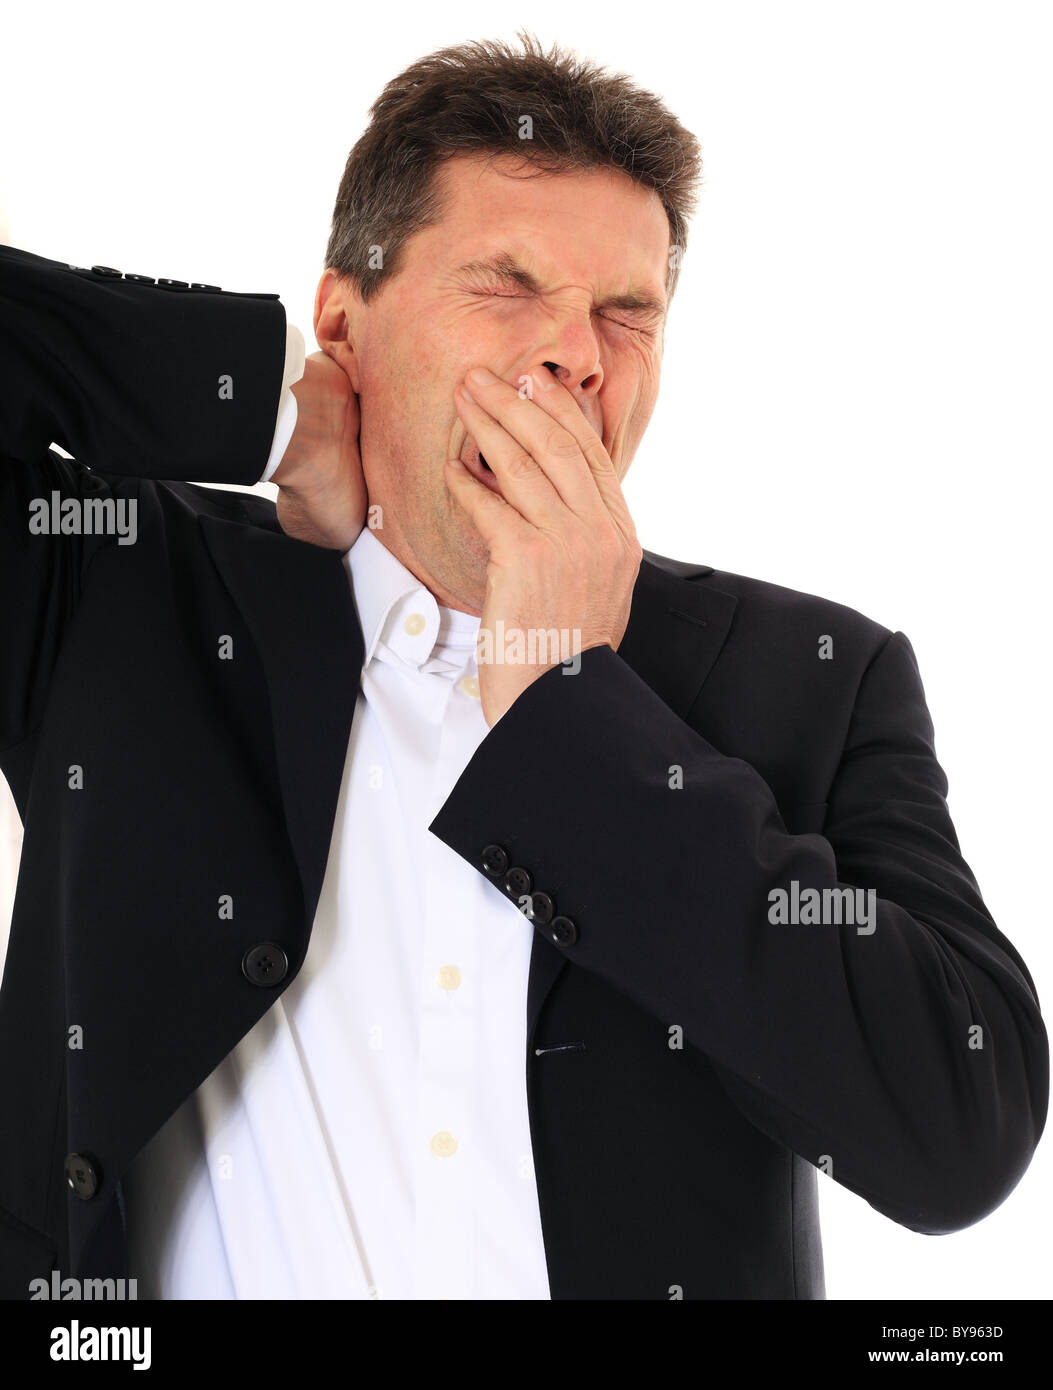 Tired middle-aged man. All on white background. - Stock Image